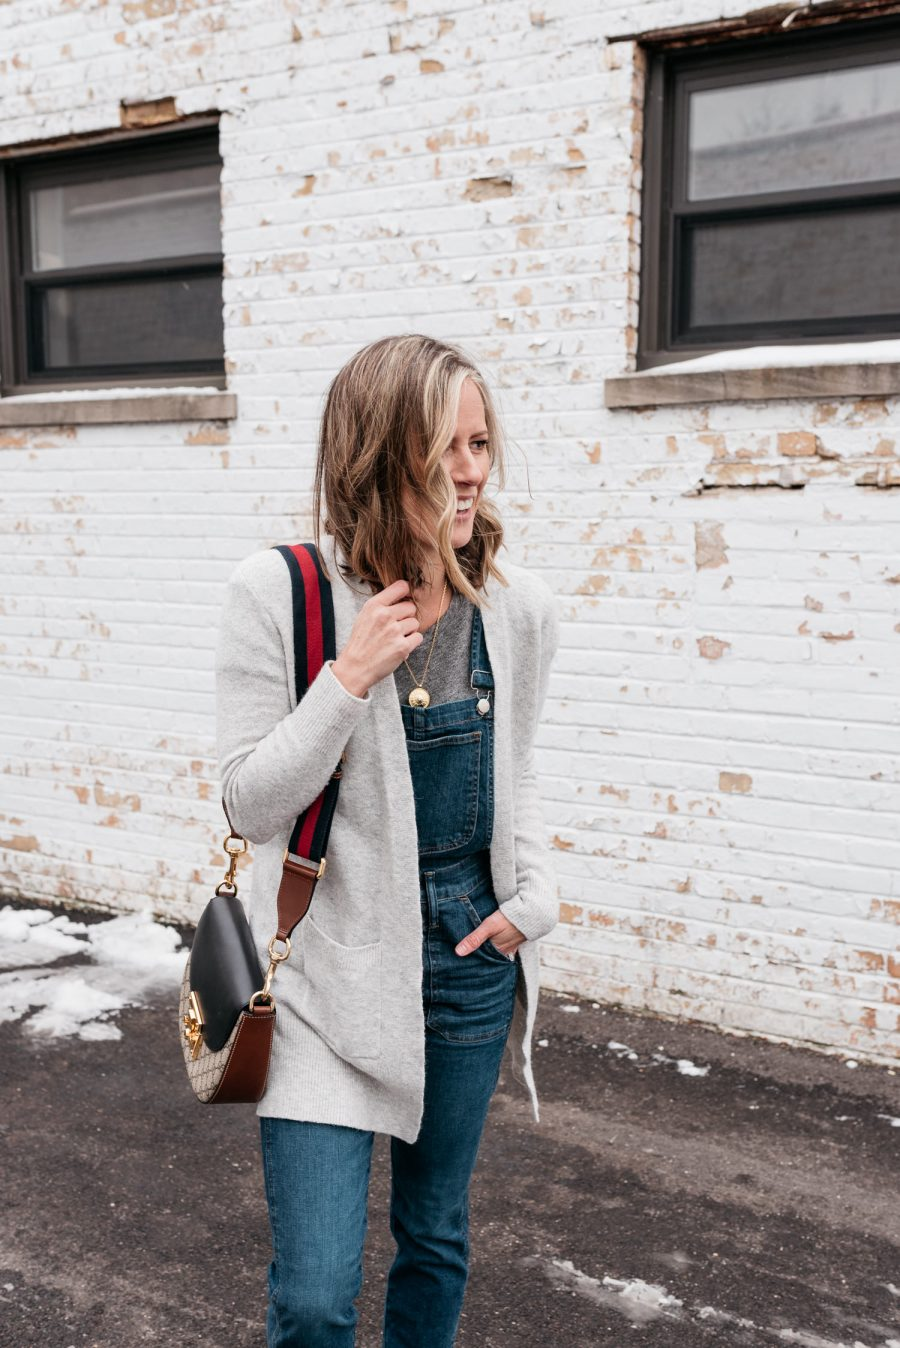 Overalls, cardigan, cross body bag